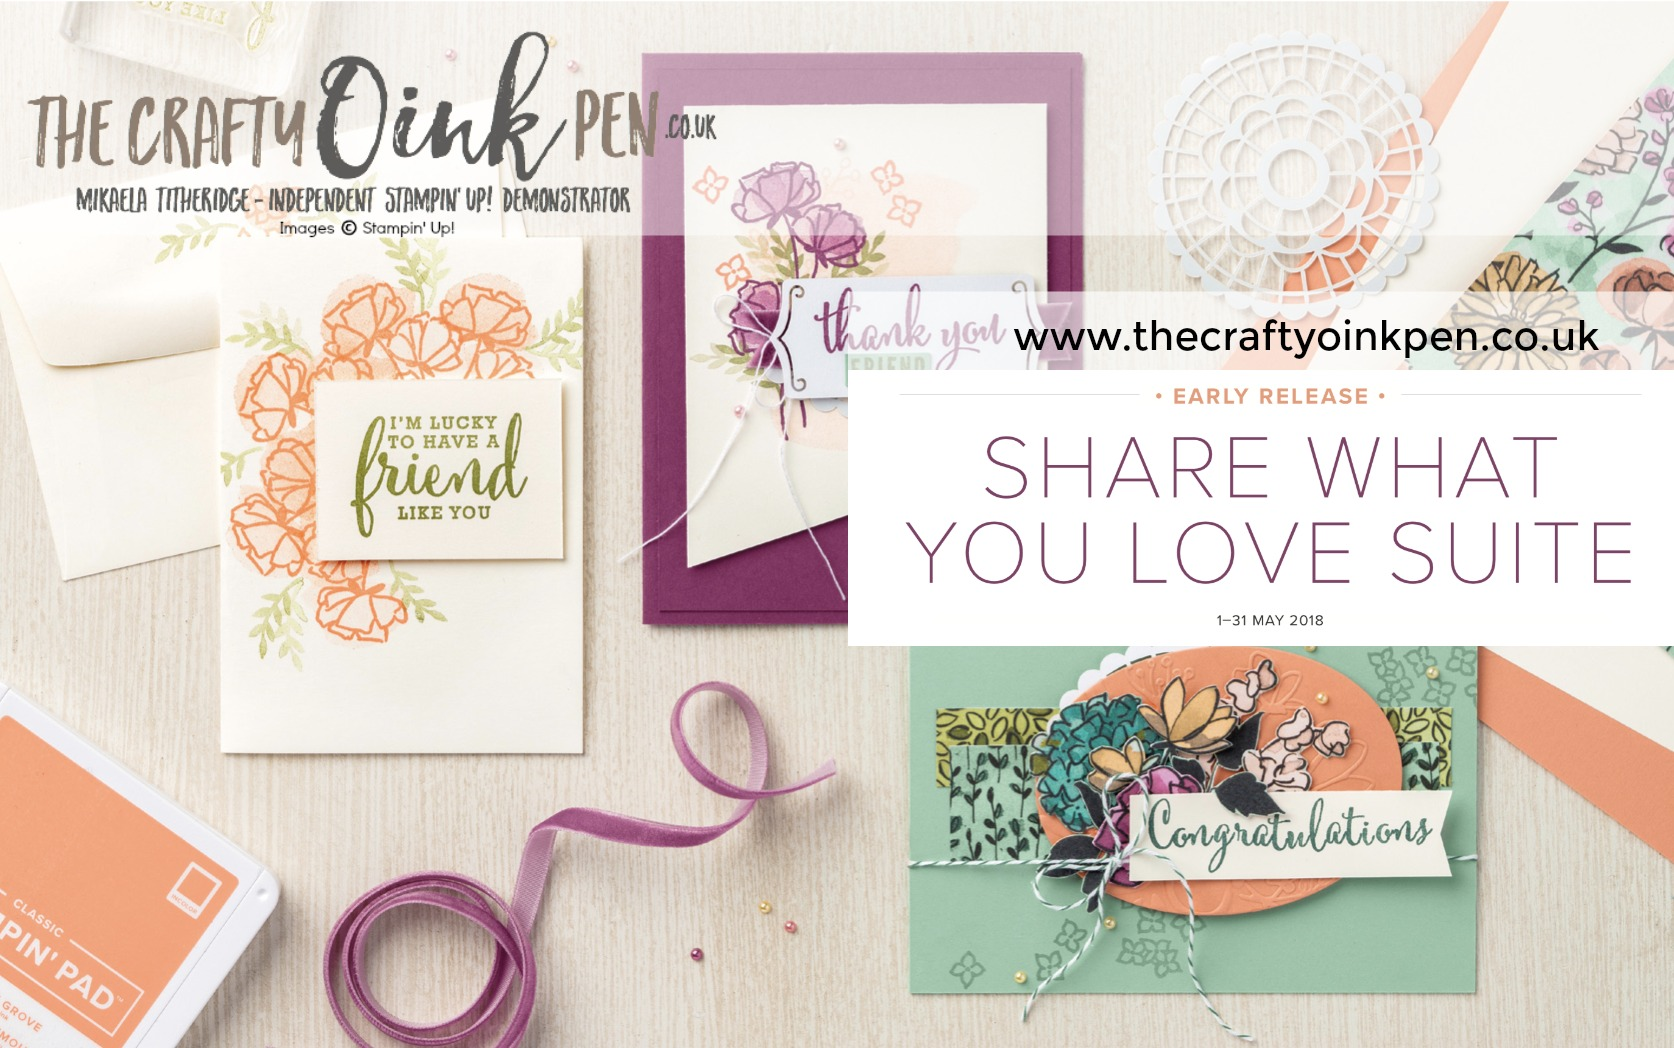 Share What You Love Suite - Early Release Stampin' Up! Products available from 1 - 31 May through Mikaela Titheridge, UK Independent Stampin' Up! Demonstrator, The Crafty oINK Pen. Online Shop available 24/7